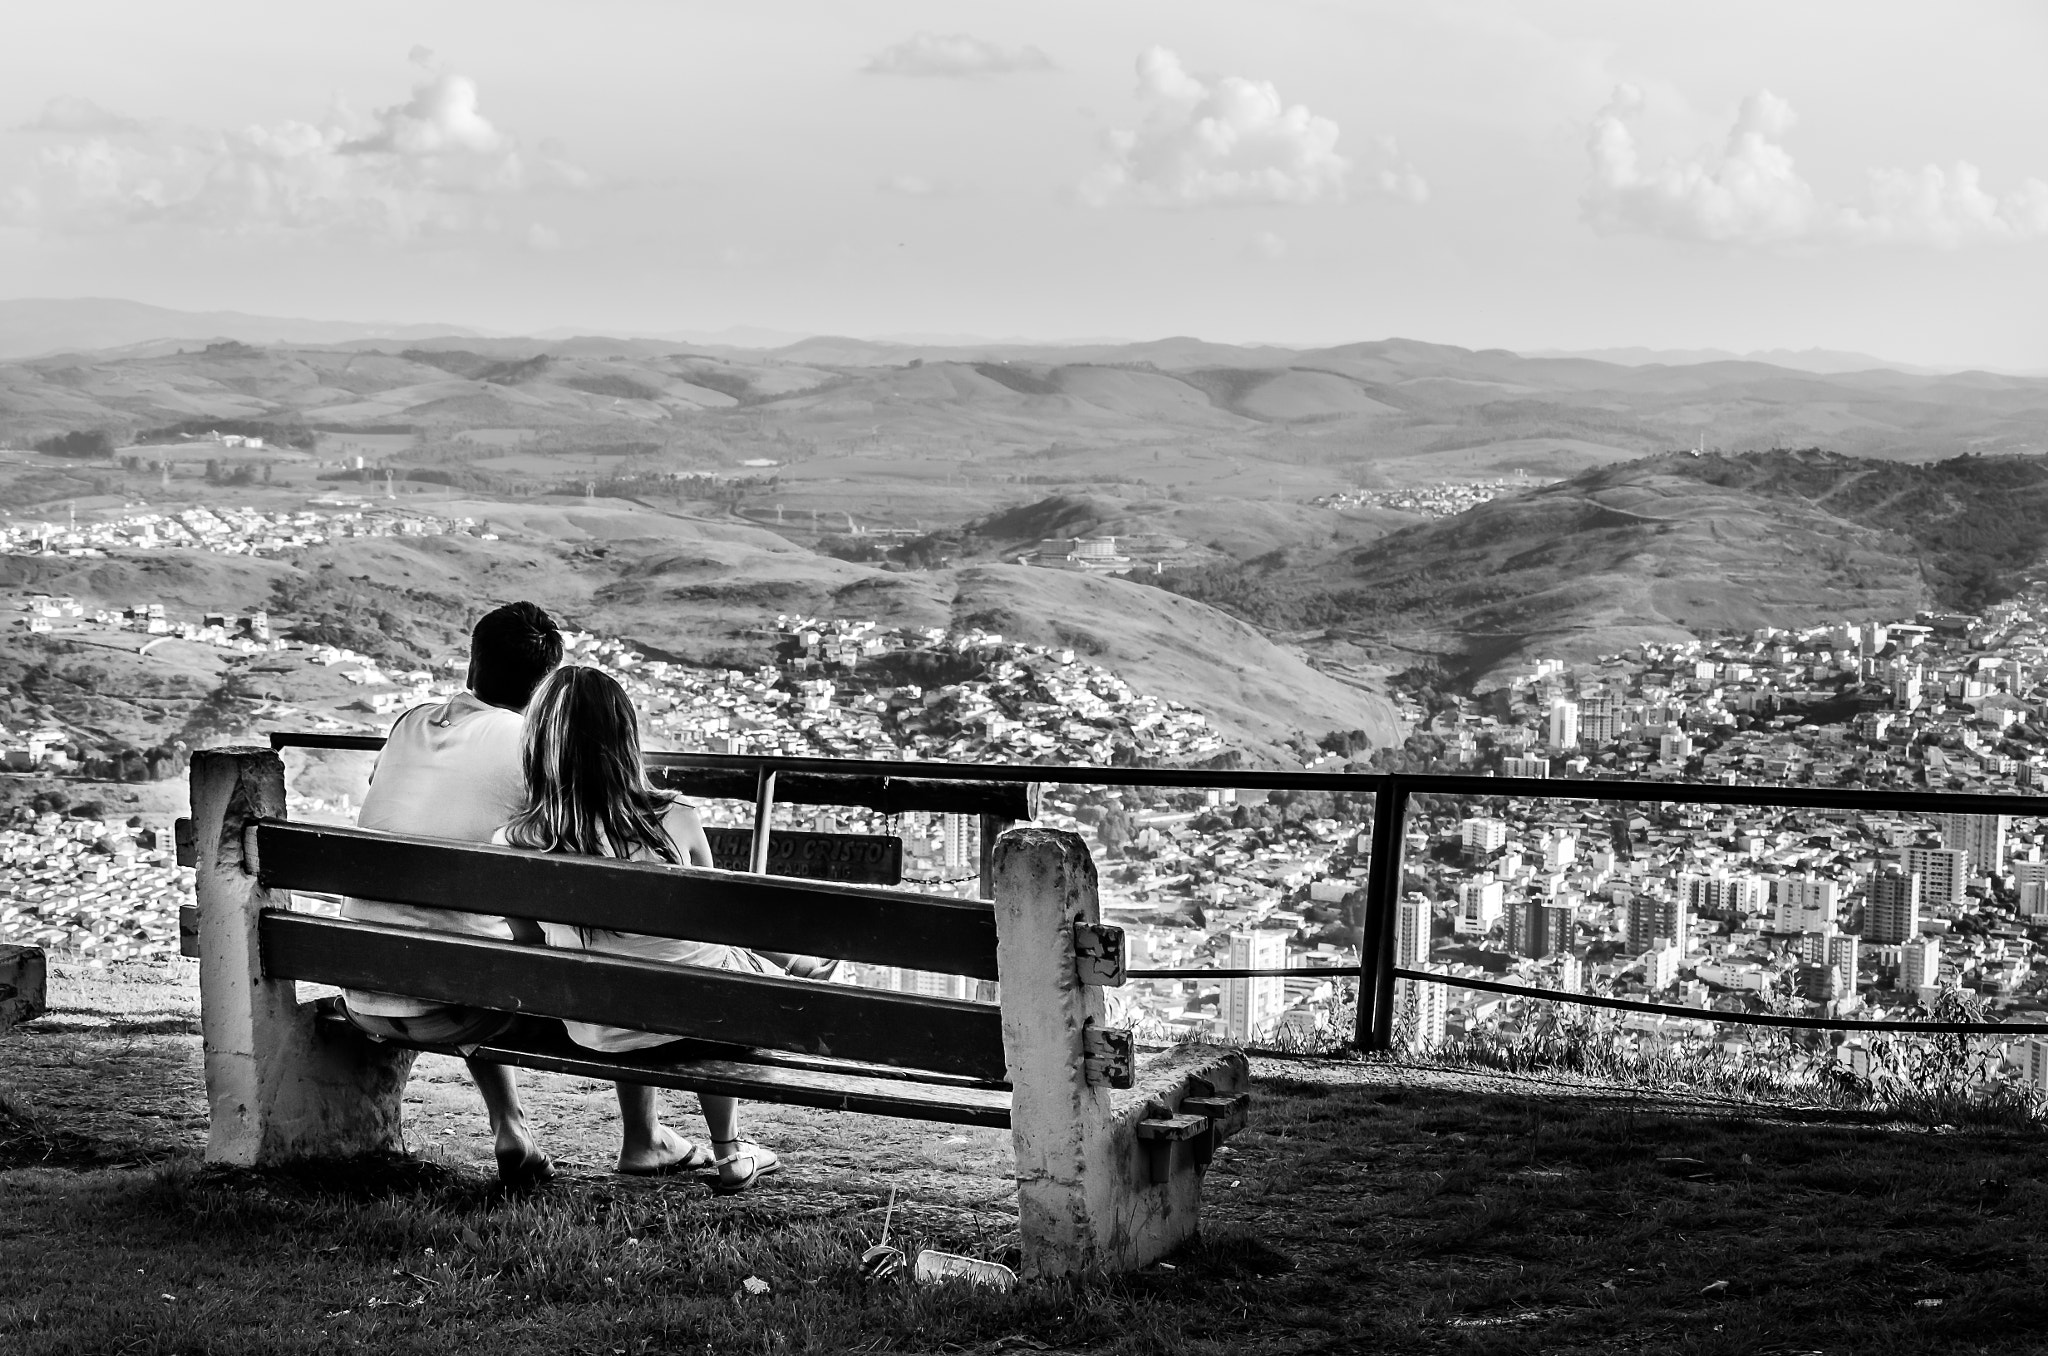 Photograph In Peace by Rafael Soares on 500px